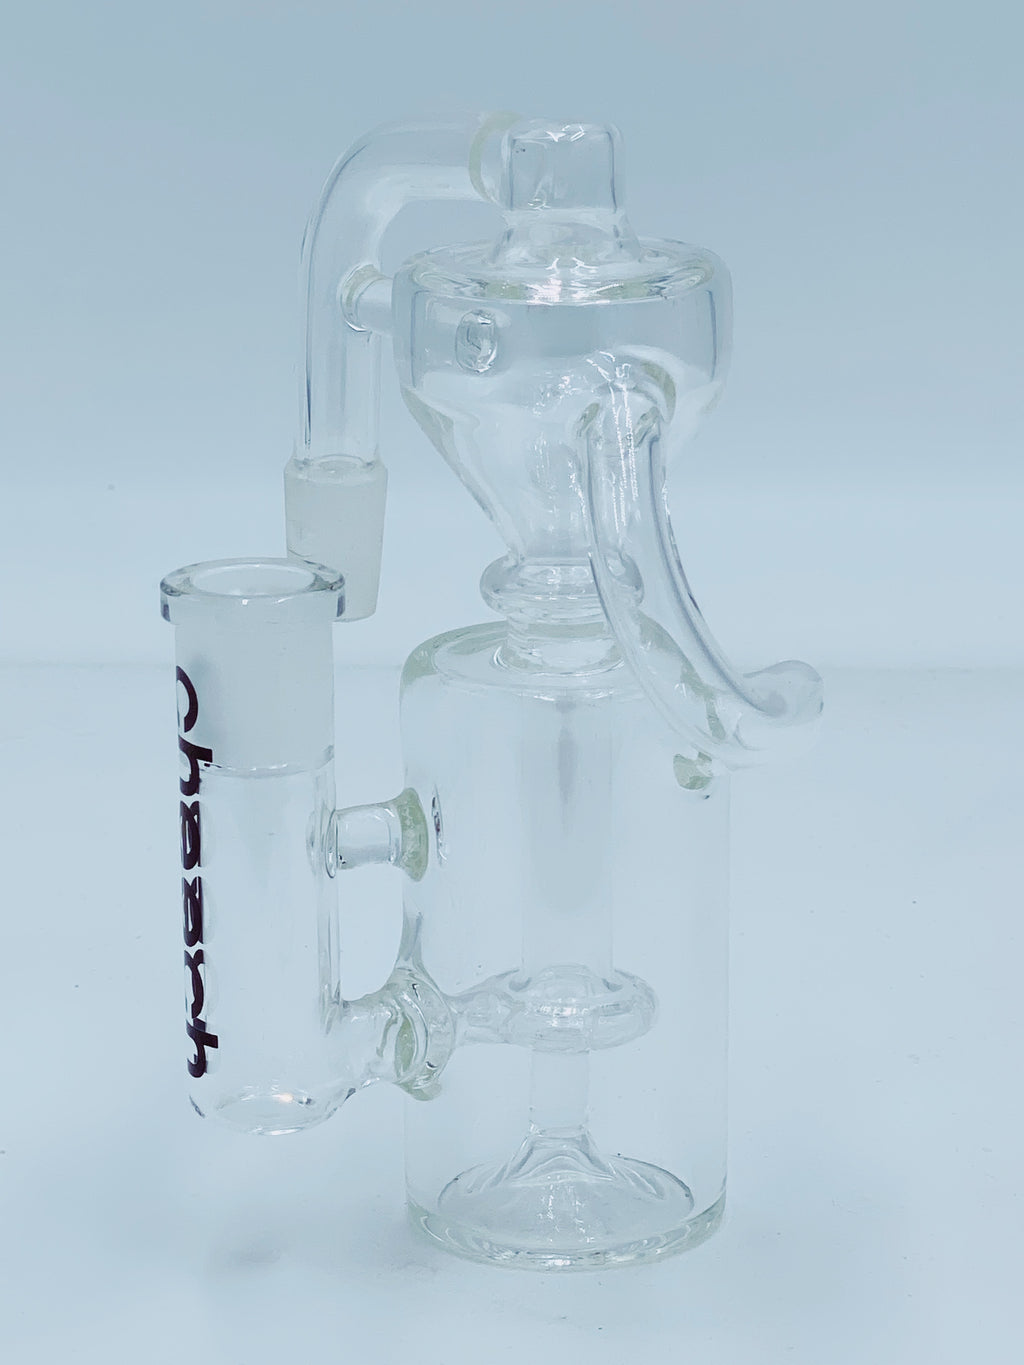 CHEECH GLASS RECYCLER ASH CATCHER - Smoke Country - Land of the artistic glass blown bongs